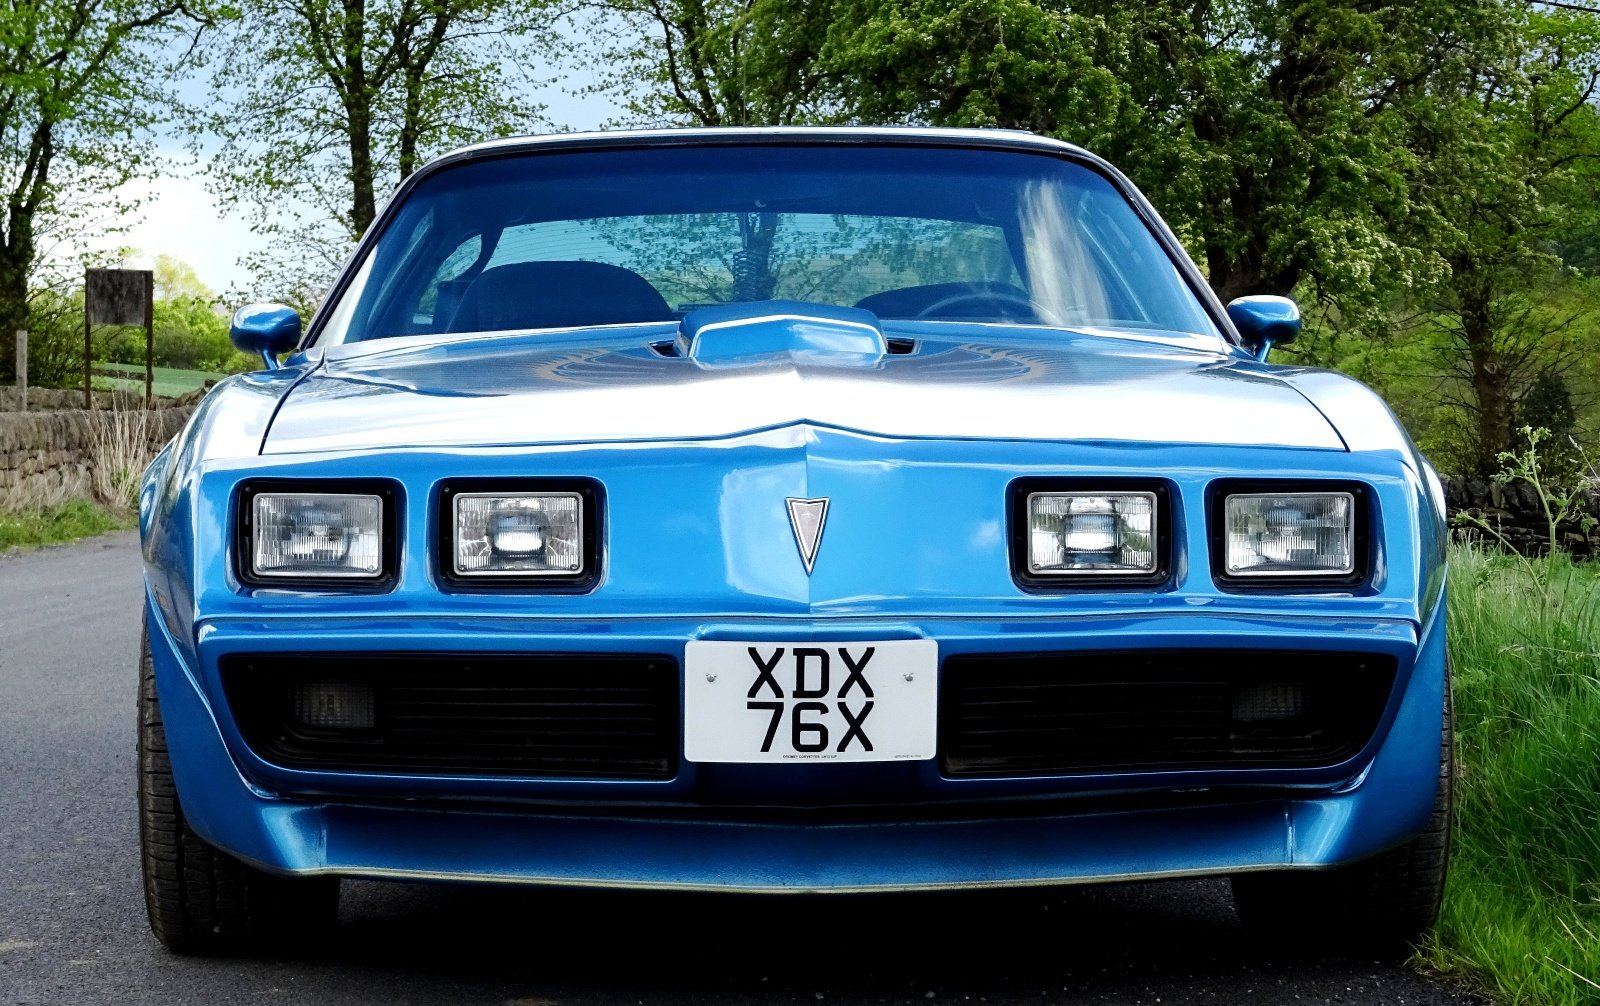 1980 PONTIAC FIREBIRD TRANS AM 6.6 LITRE V8 AMERICAN MUSCLE CAR For Sale (picture 3 of 6)